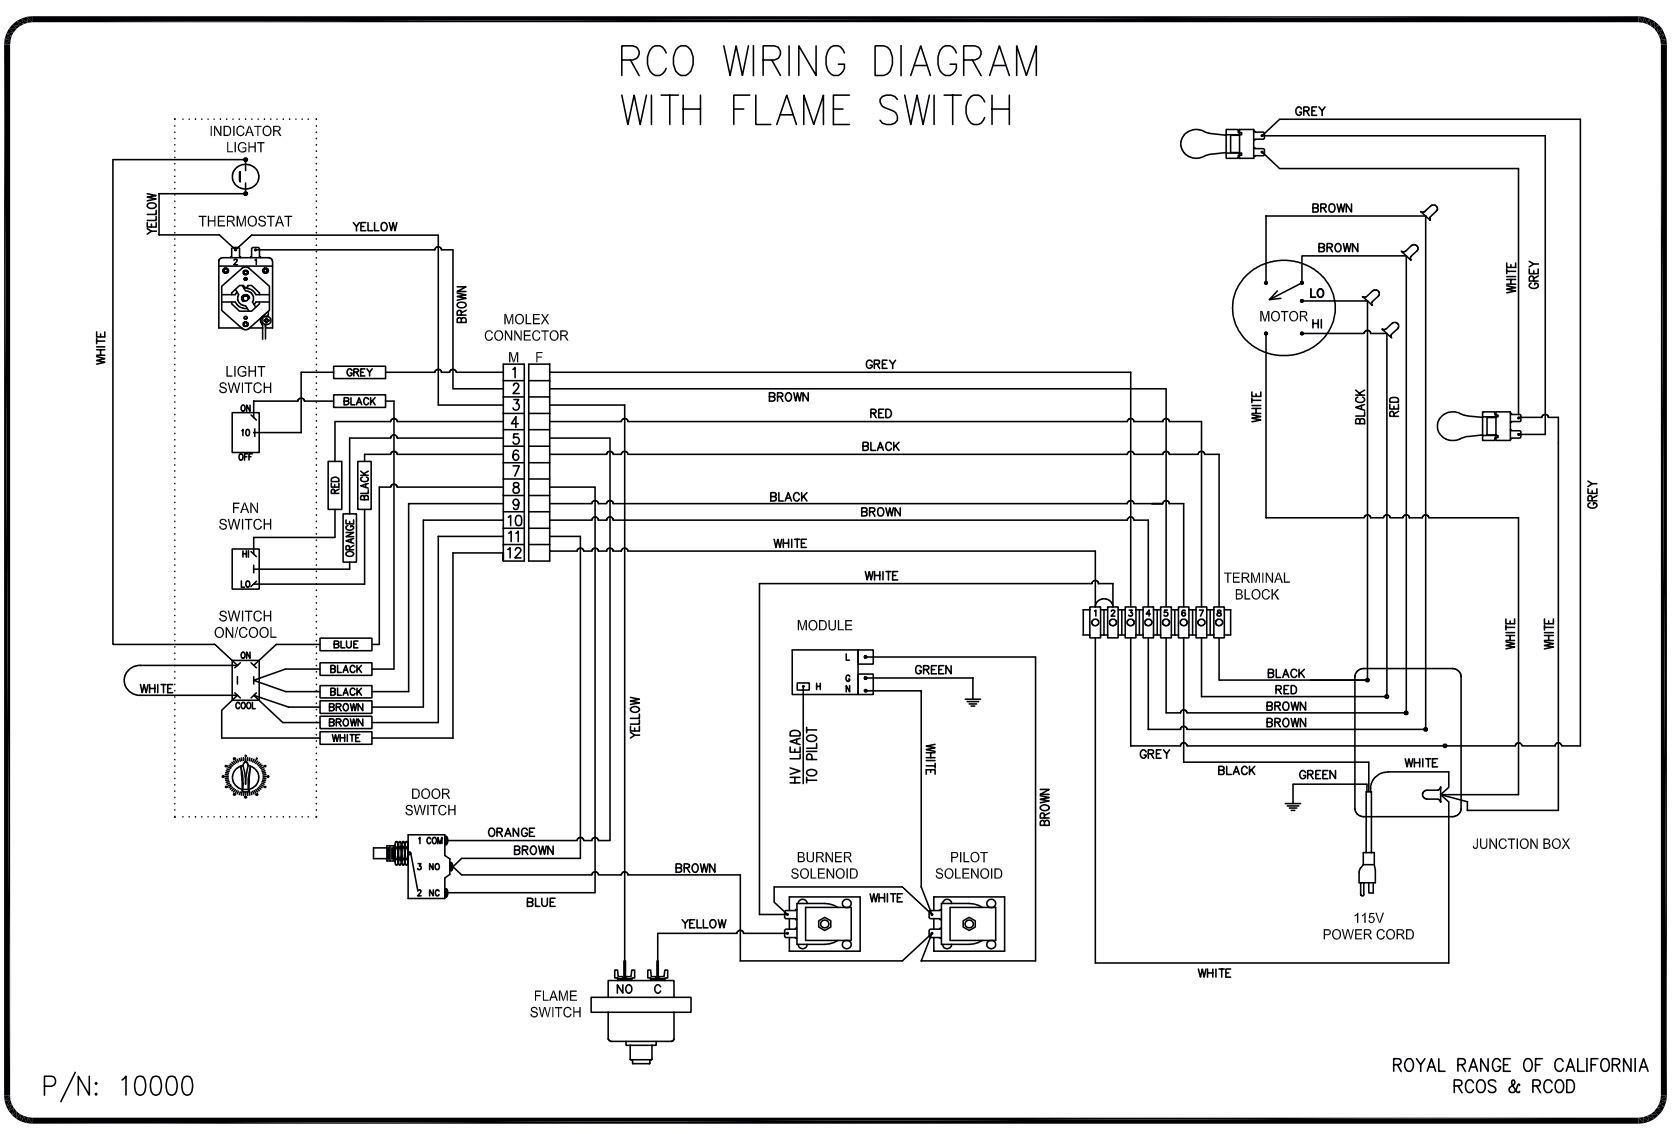 A Circuit Diagram Of A Torch